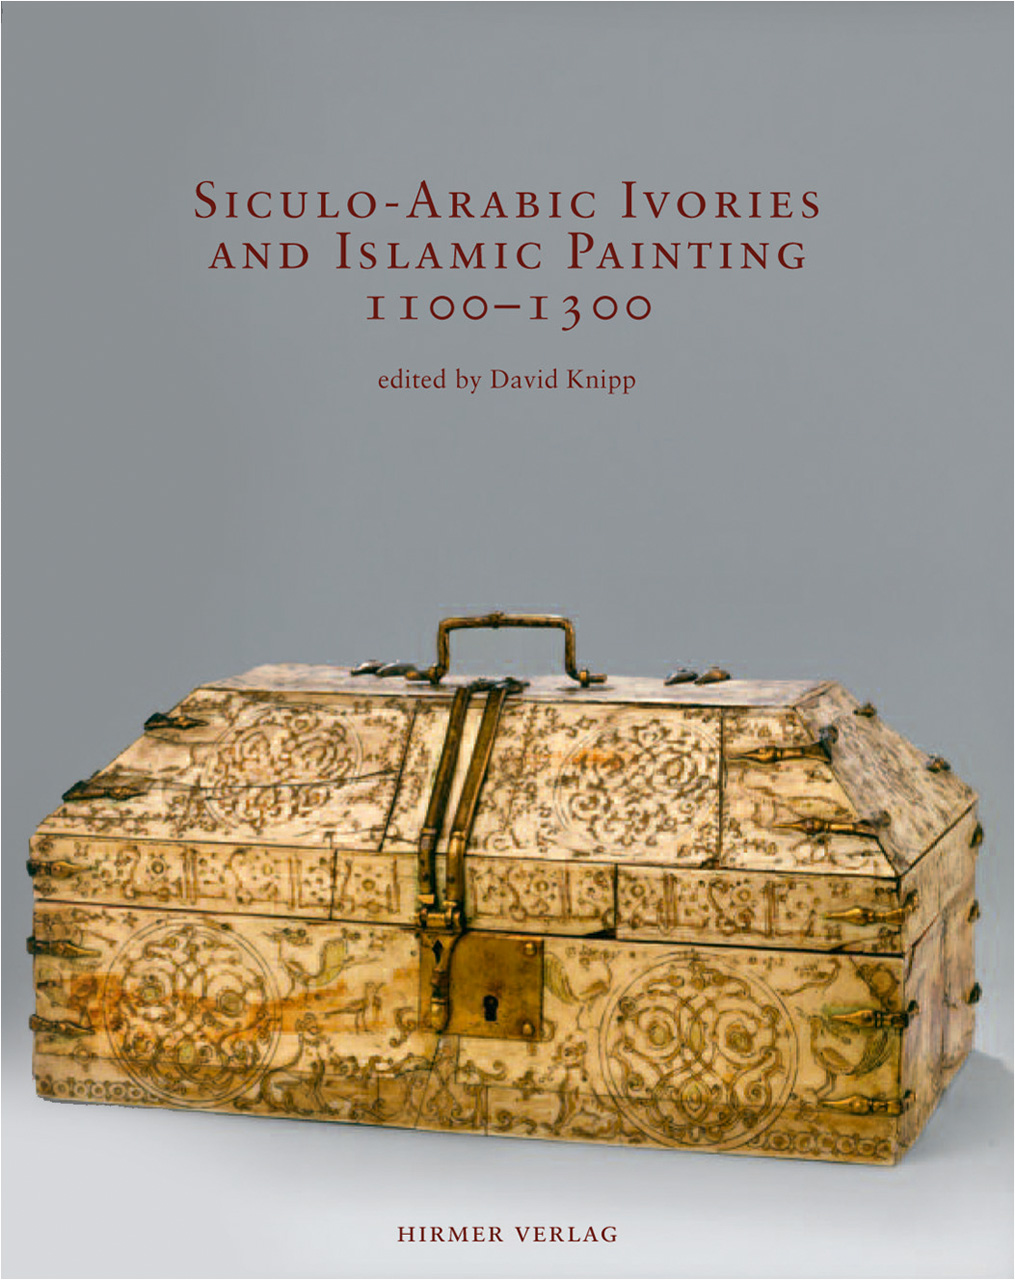 Siculo-Arabic Ivories and Islamic Painting: 1100-1300